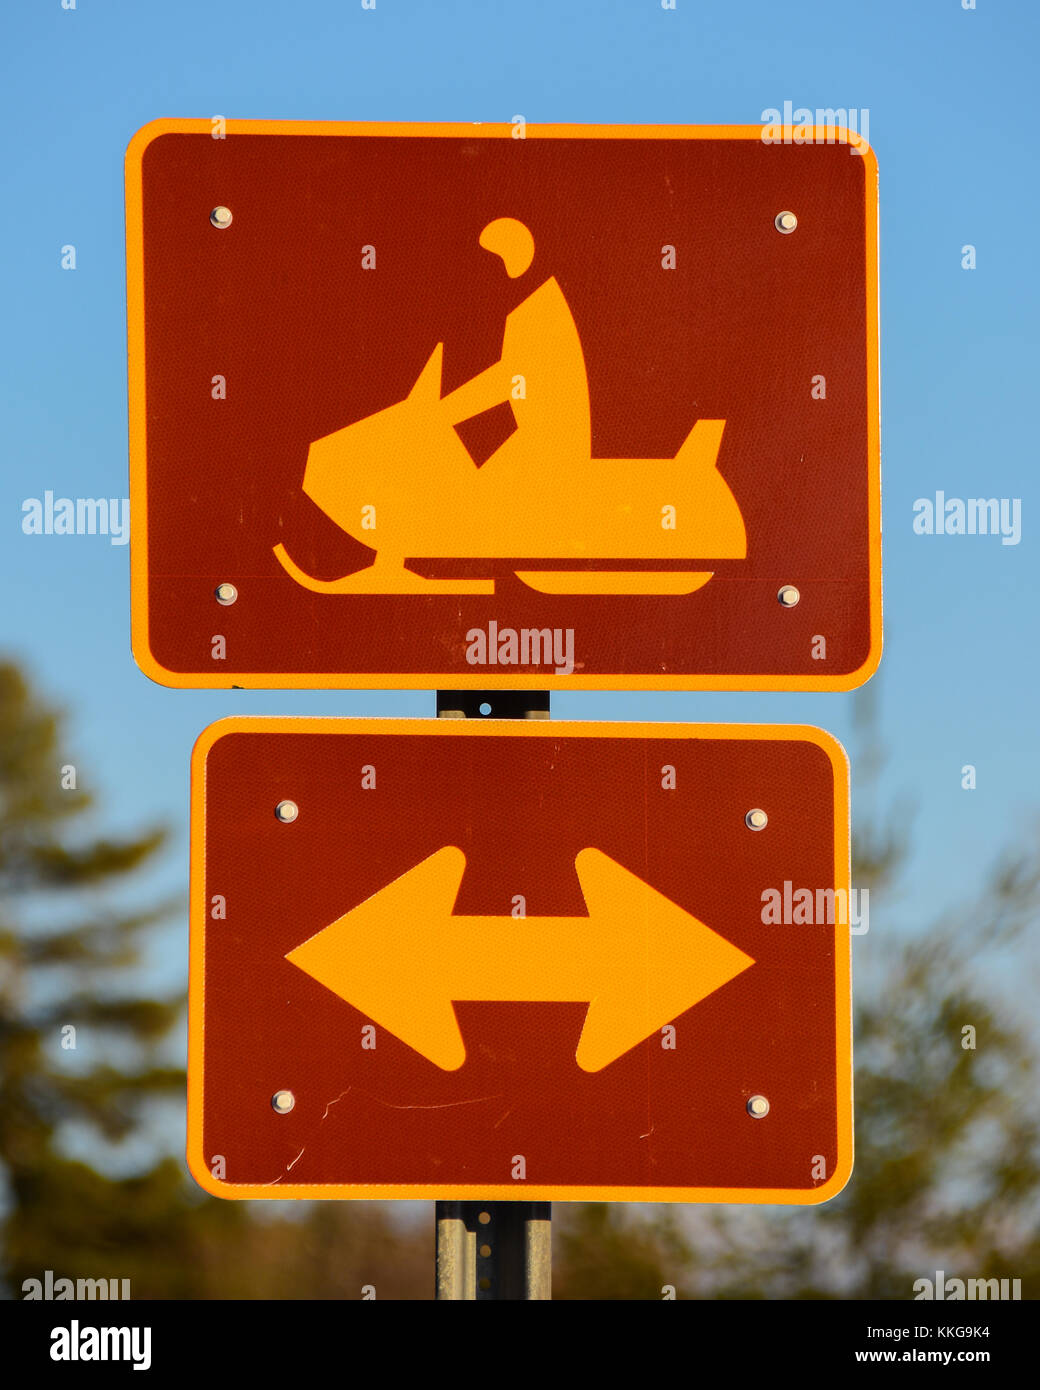 Snowmobile road crossing sign in Speculator, NY in the Adirondacks. - Stock Image